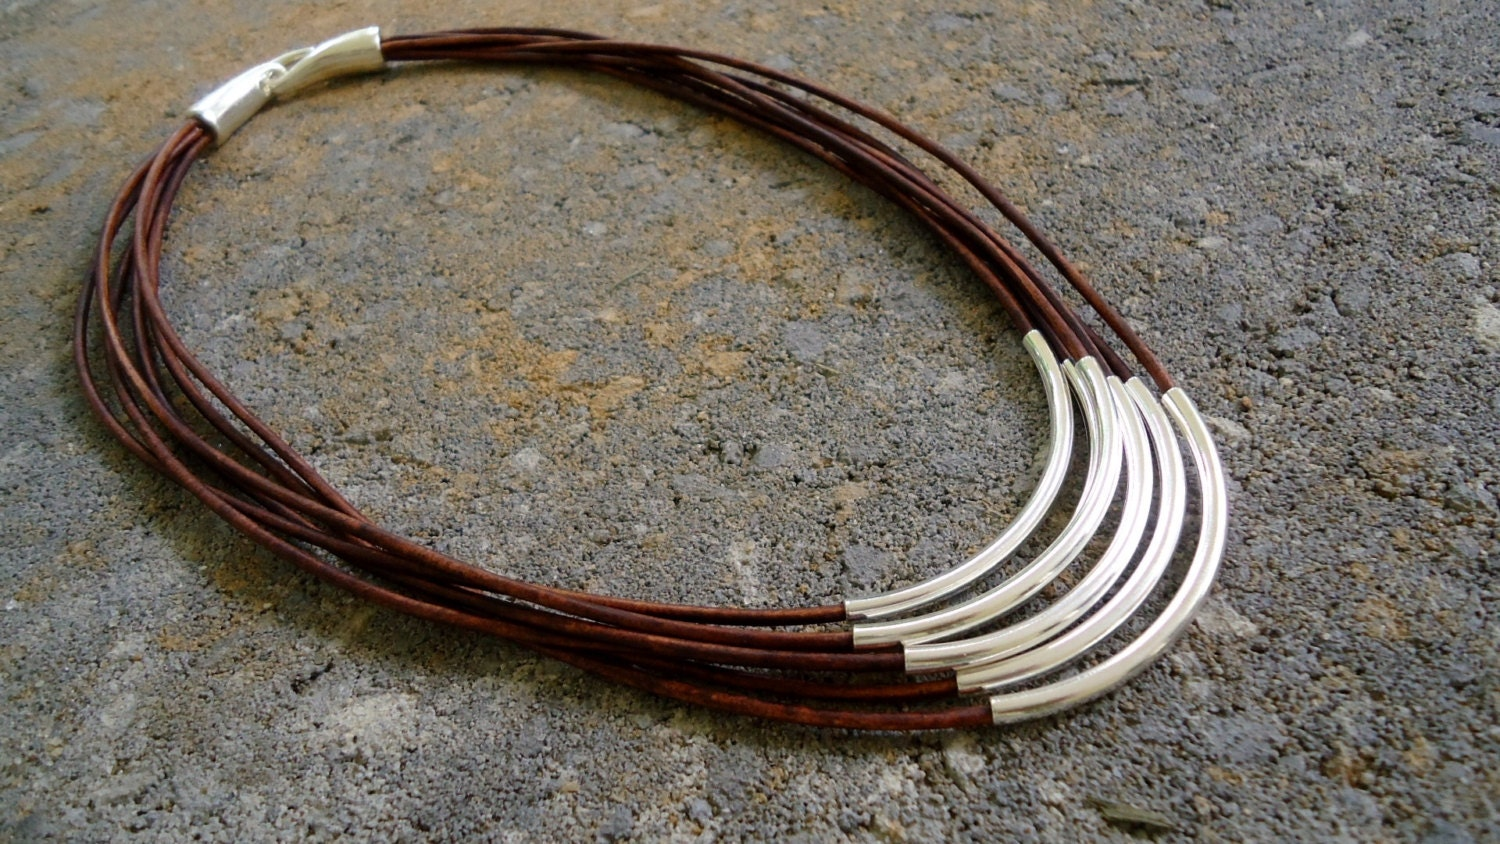 Sterling,silver,on,multiple,strands,of,leather,Necklace/,Layered,Chic,Jewelry,leather_necklace,sterling_necklace,sterling_silver,layered_necklace,silver_and_leather,western_style,western_jewelry,vintage_leather,iseadesigns,Modern_necklace,edgy_jewelry,western_necklace,sterling silver,sterling silver plated casting